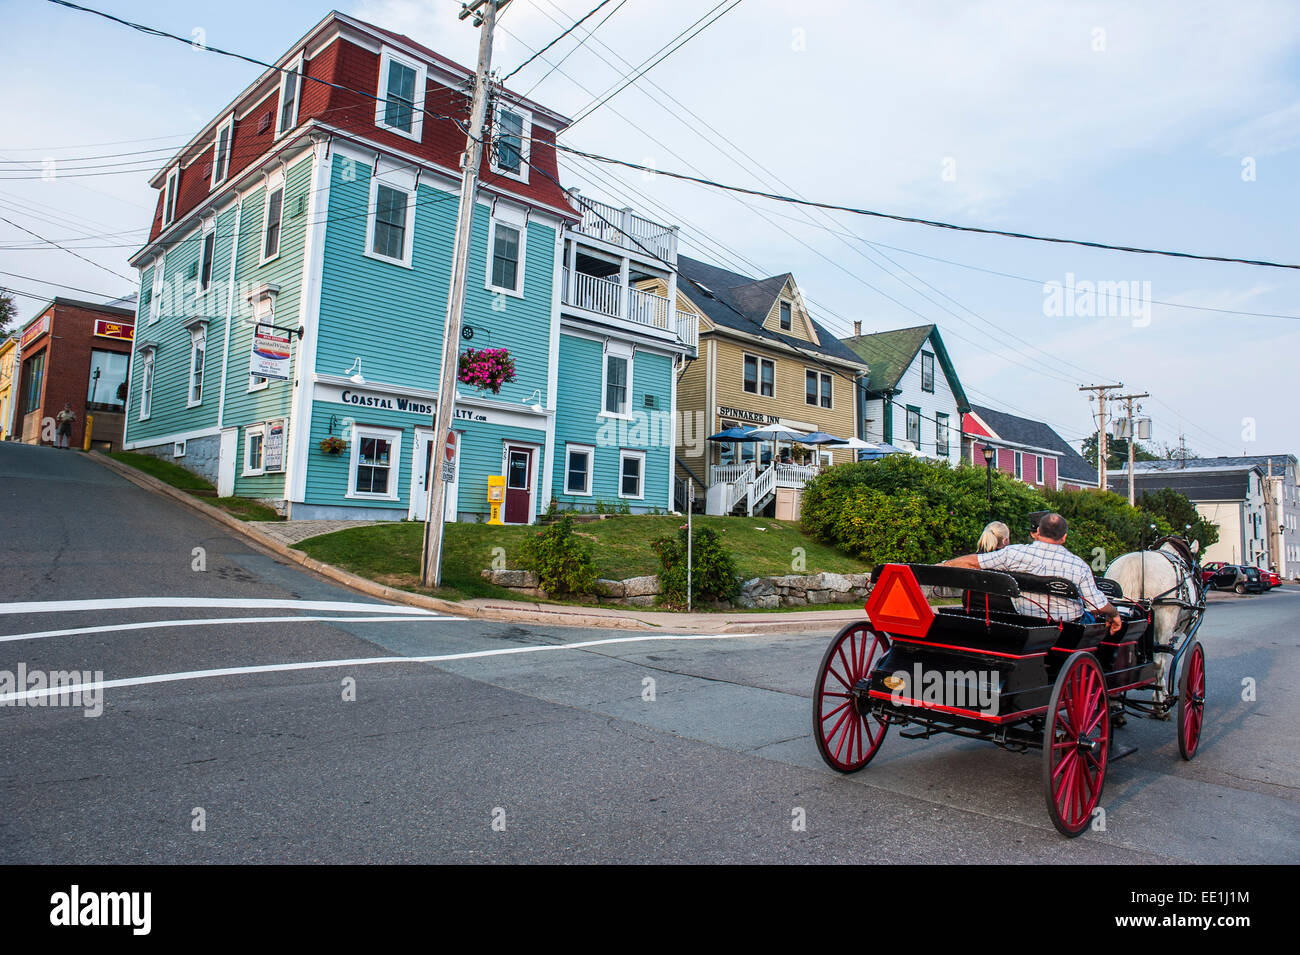 Horse cart riding historical style in the Old Town, Lunenburg, UNESCO World Heritage Site, Nova Scotia, Canada, - Stock Image